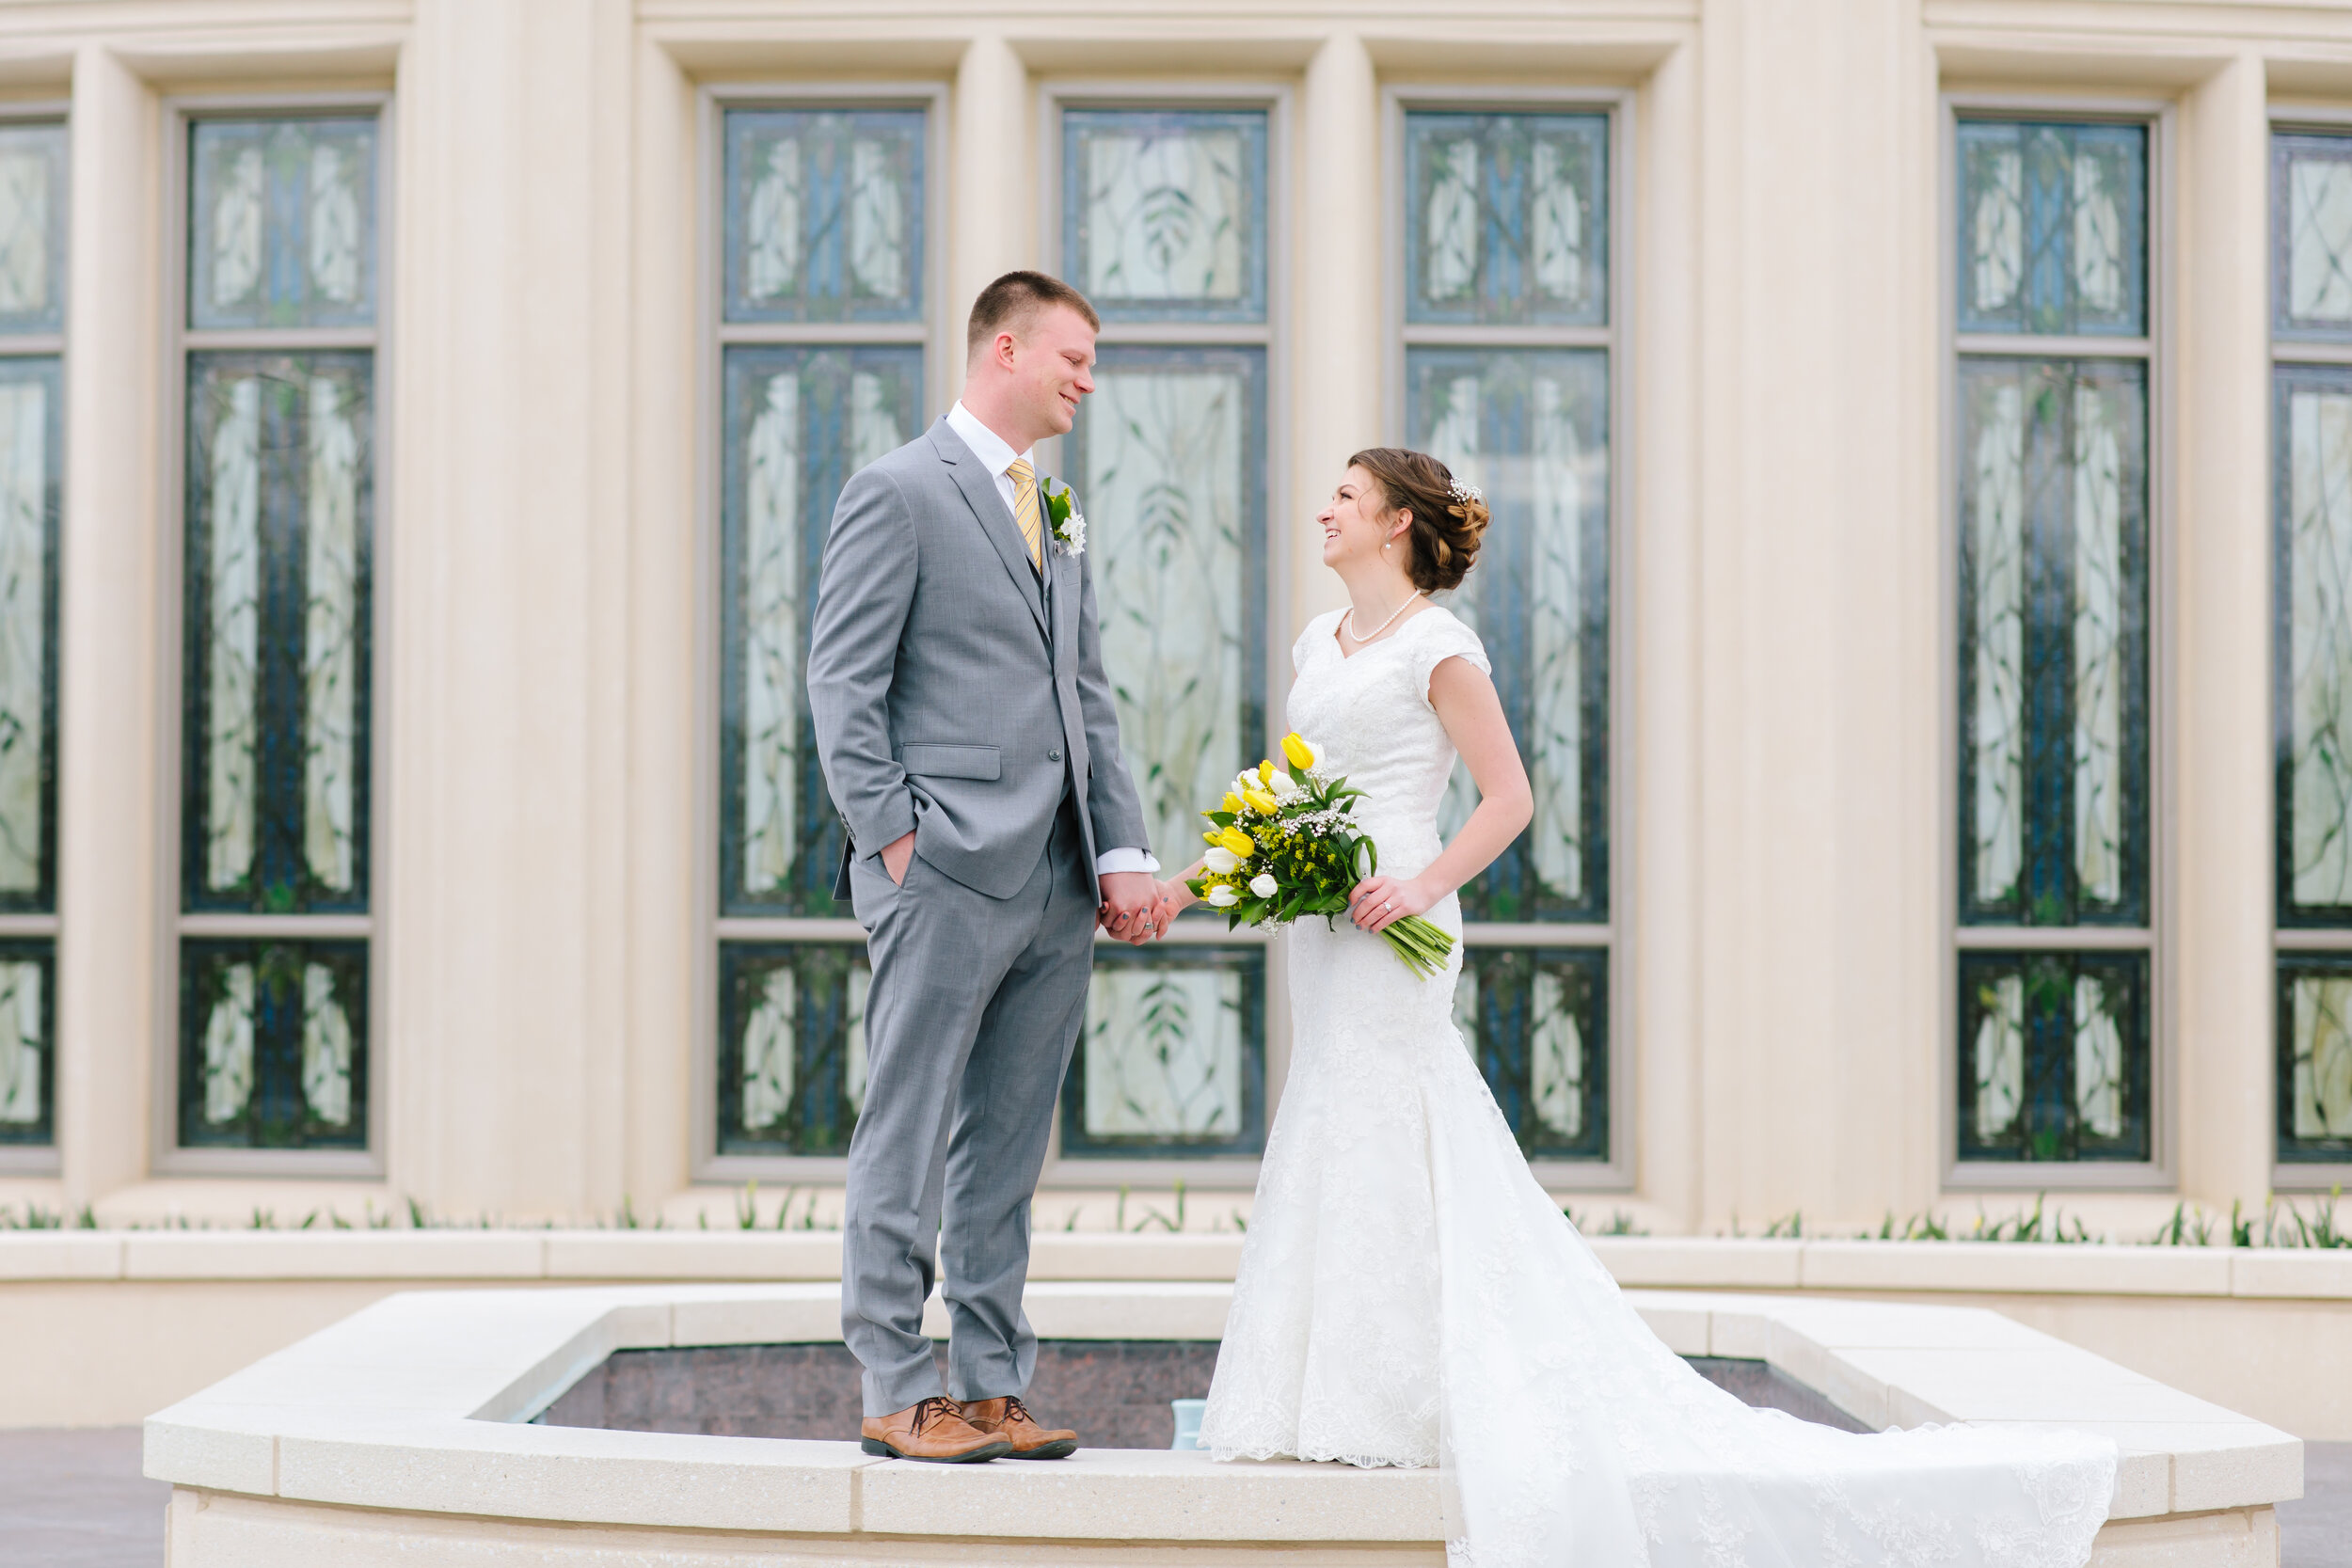 payson temple grounds beautiful stained glass amazing marble lovebirds tulip bouquet tie matching bouquet couple holding hands pose inspiration great grey suit groom outfit inspiration lds couple lovely couple bride and groom perfect match utah brides bridals #eternalbuddies #weddingsession #weddinginspo #ldswedding #ldsbride #couplegoals #paysontemple #temple #profressionalphotographer #utah #love